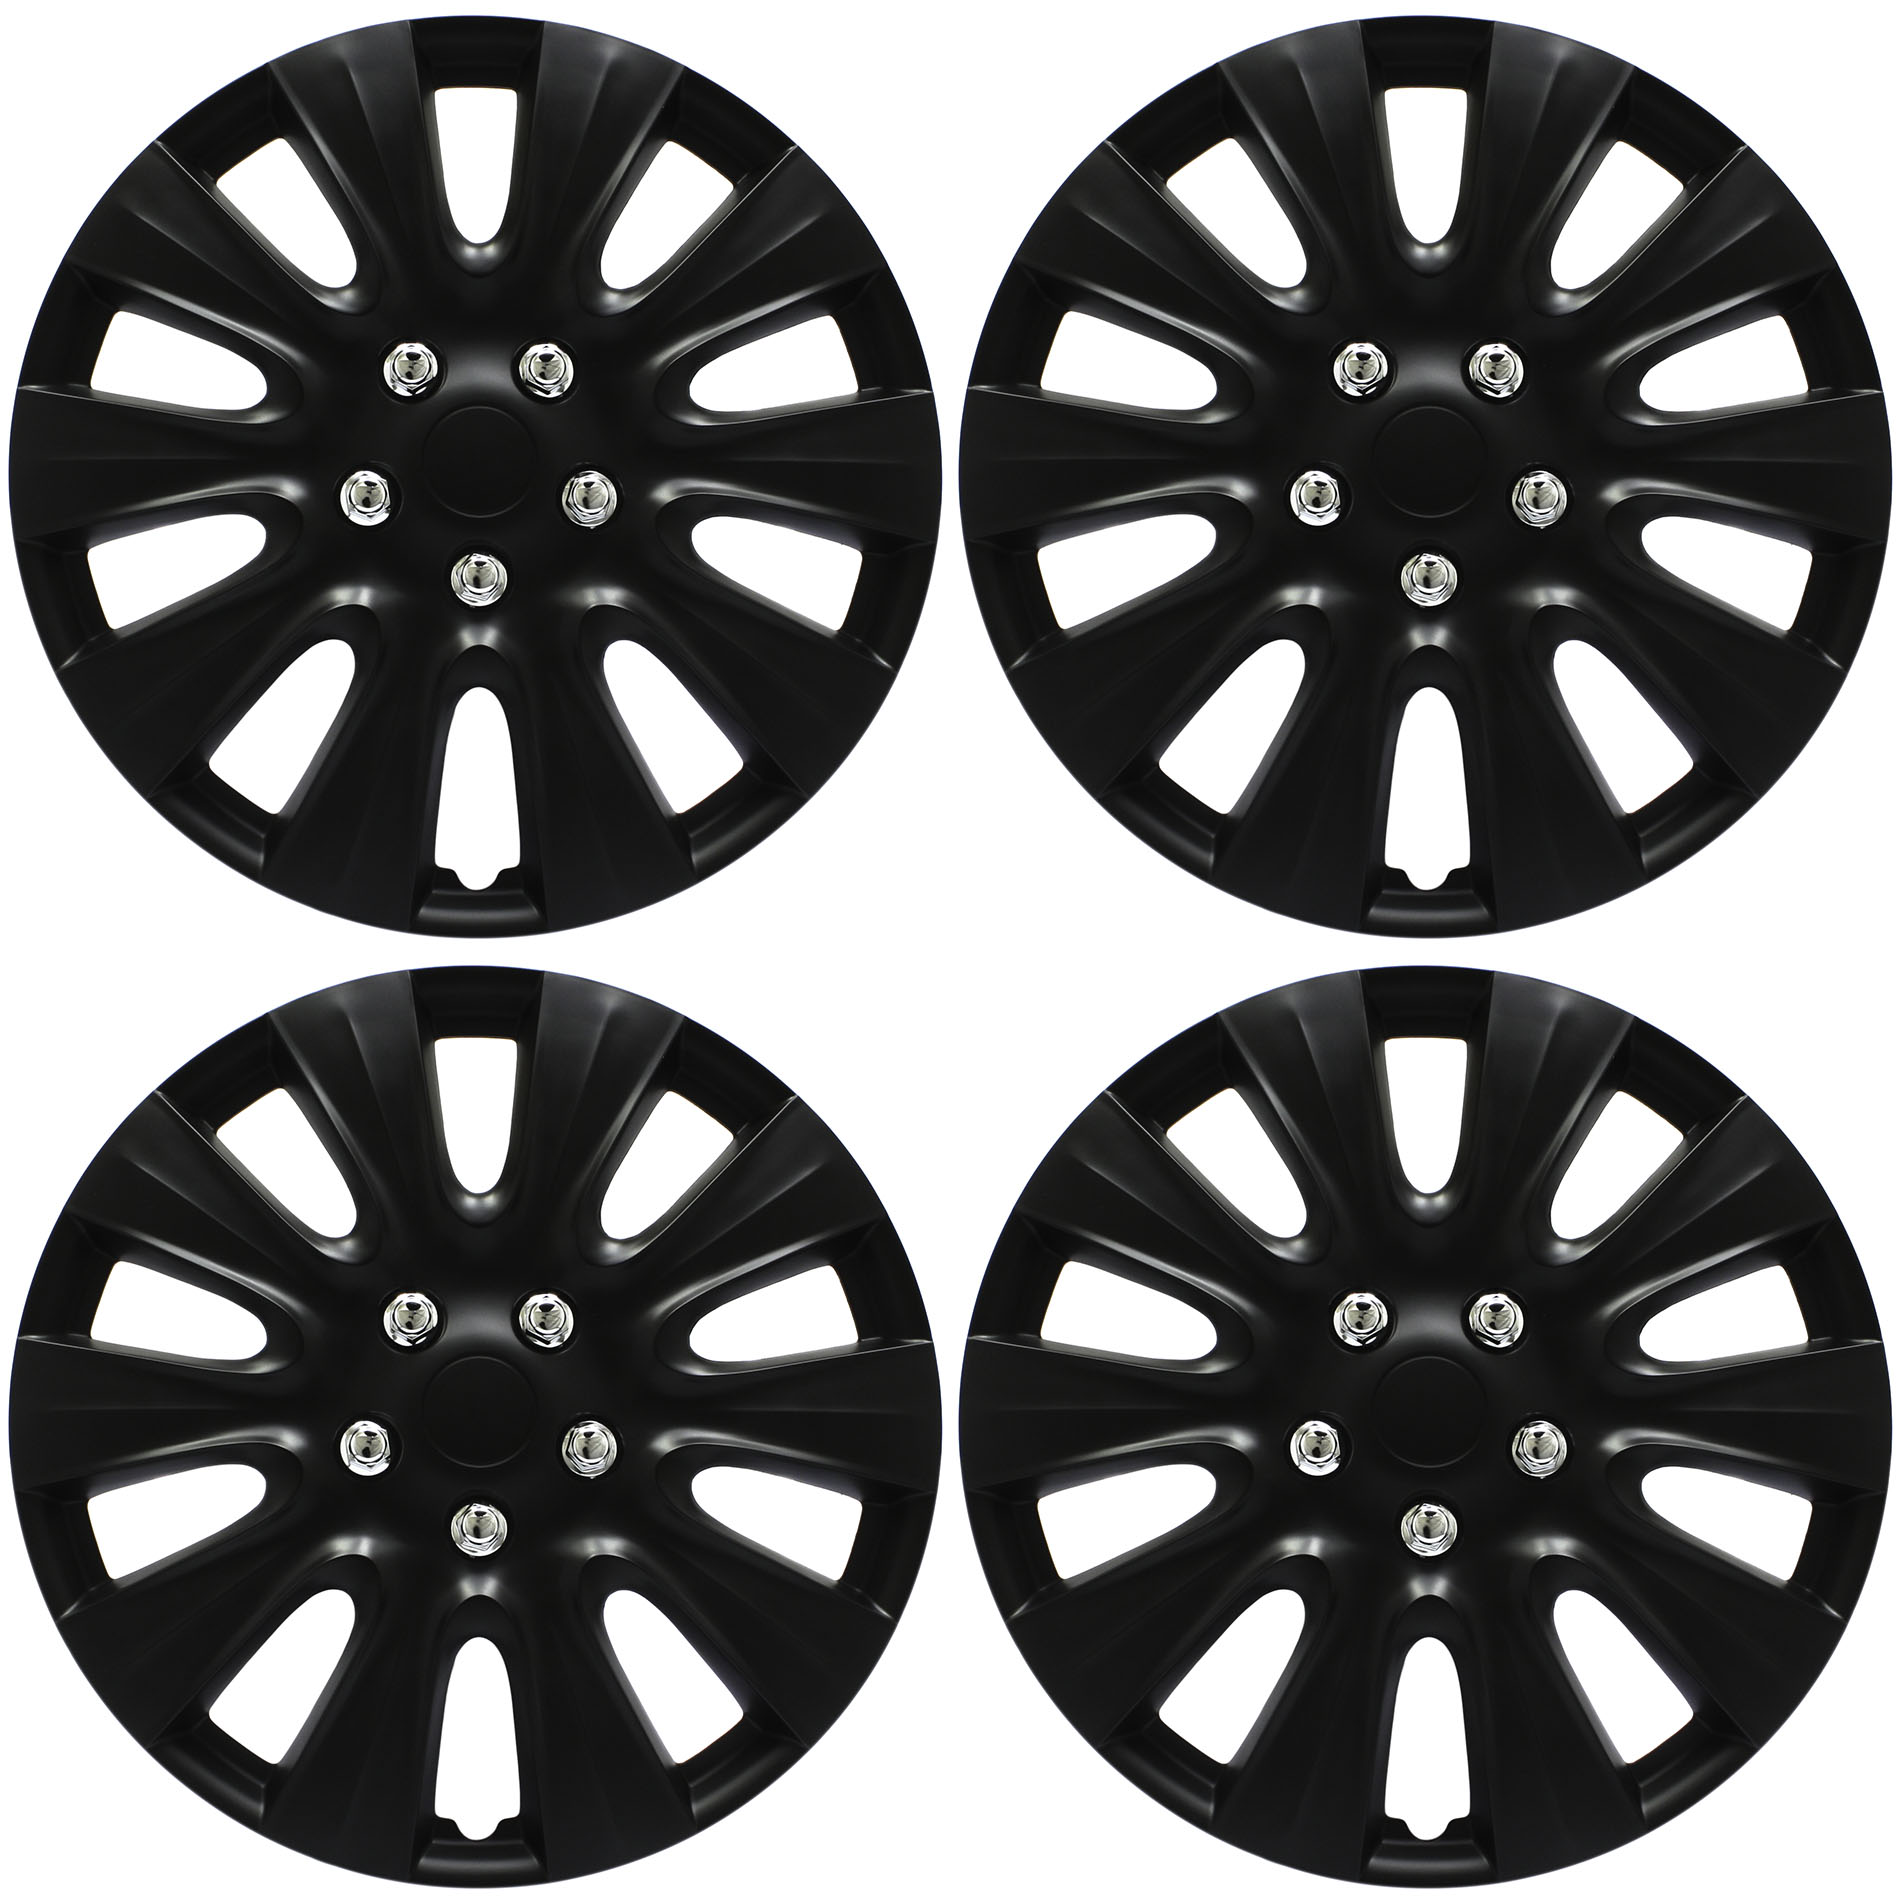 Cover Trend Set Of 4 Only Fits 17 Inch Wheels That Take Hubcaps